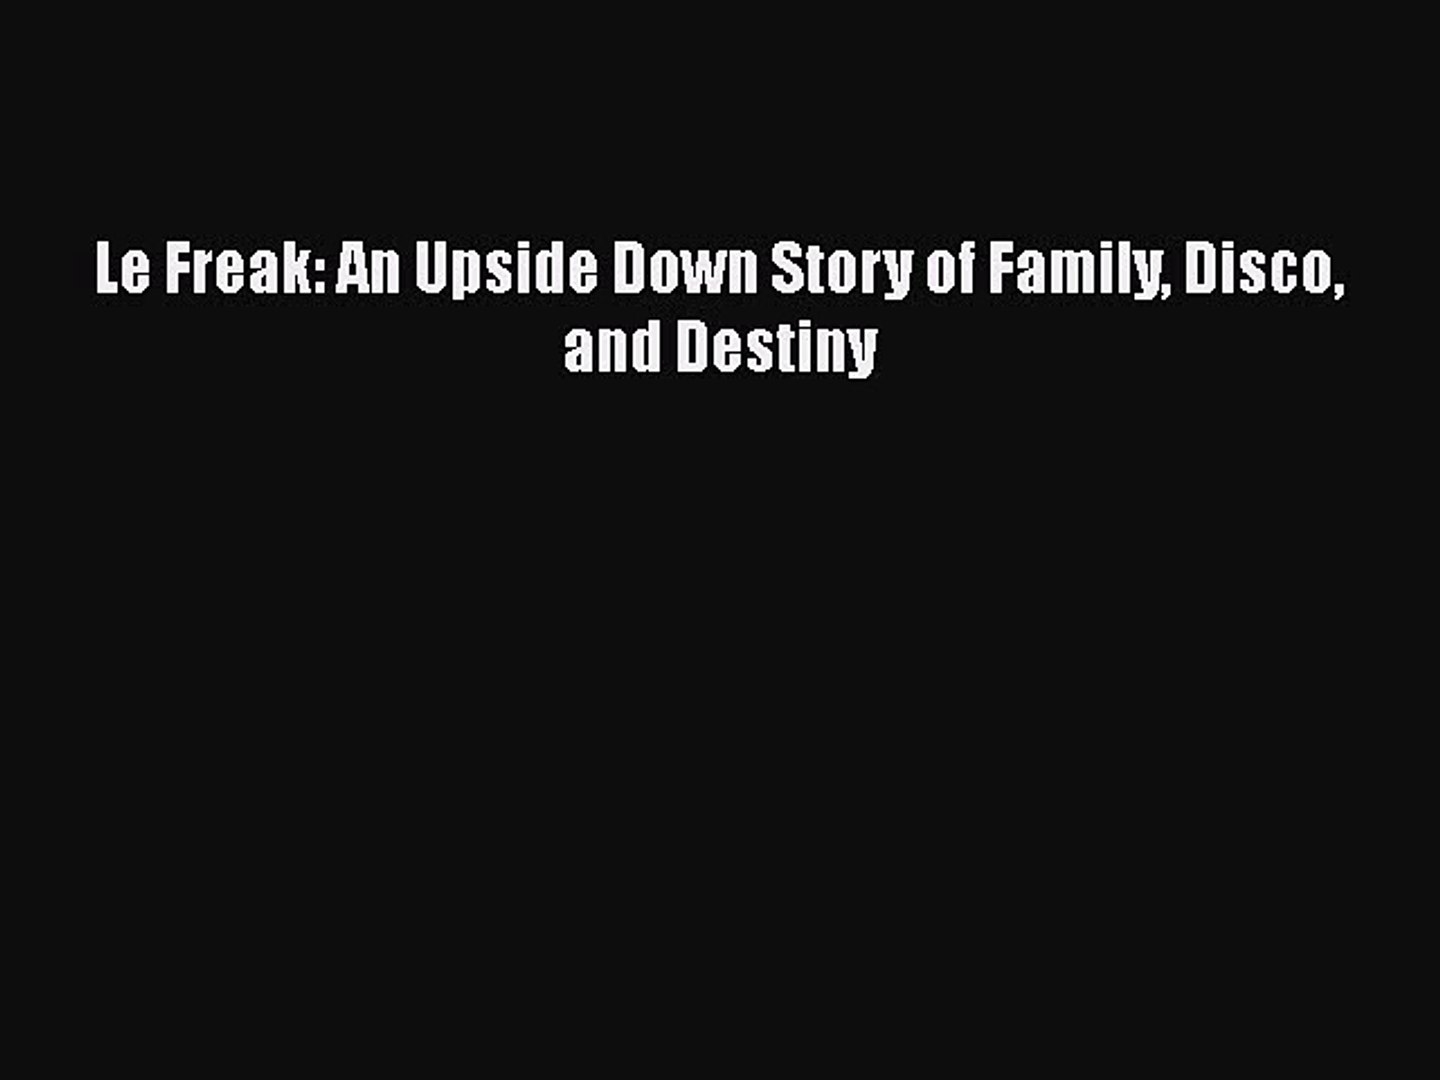 Le Freak : an upside down story of family, disco, and destiny, Nile Rodgers